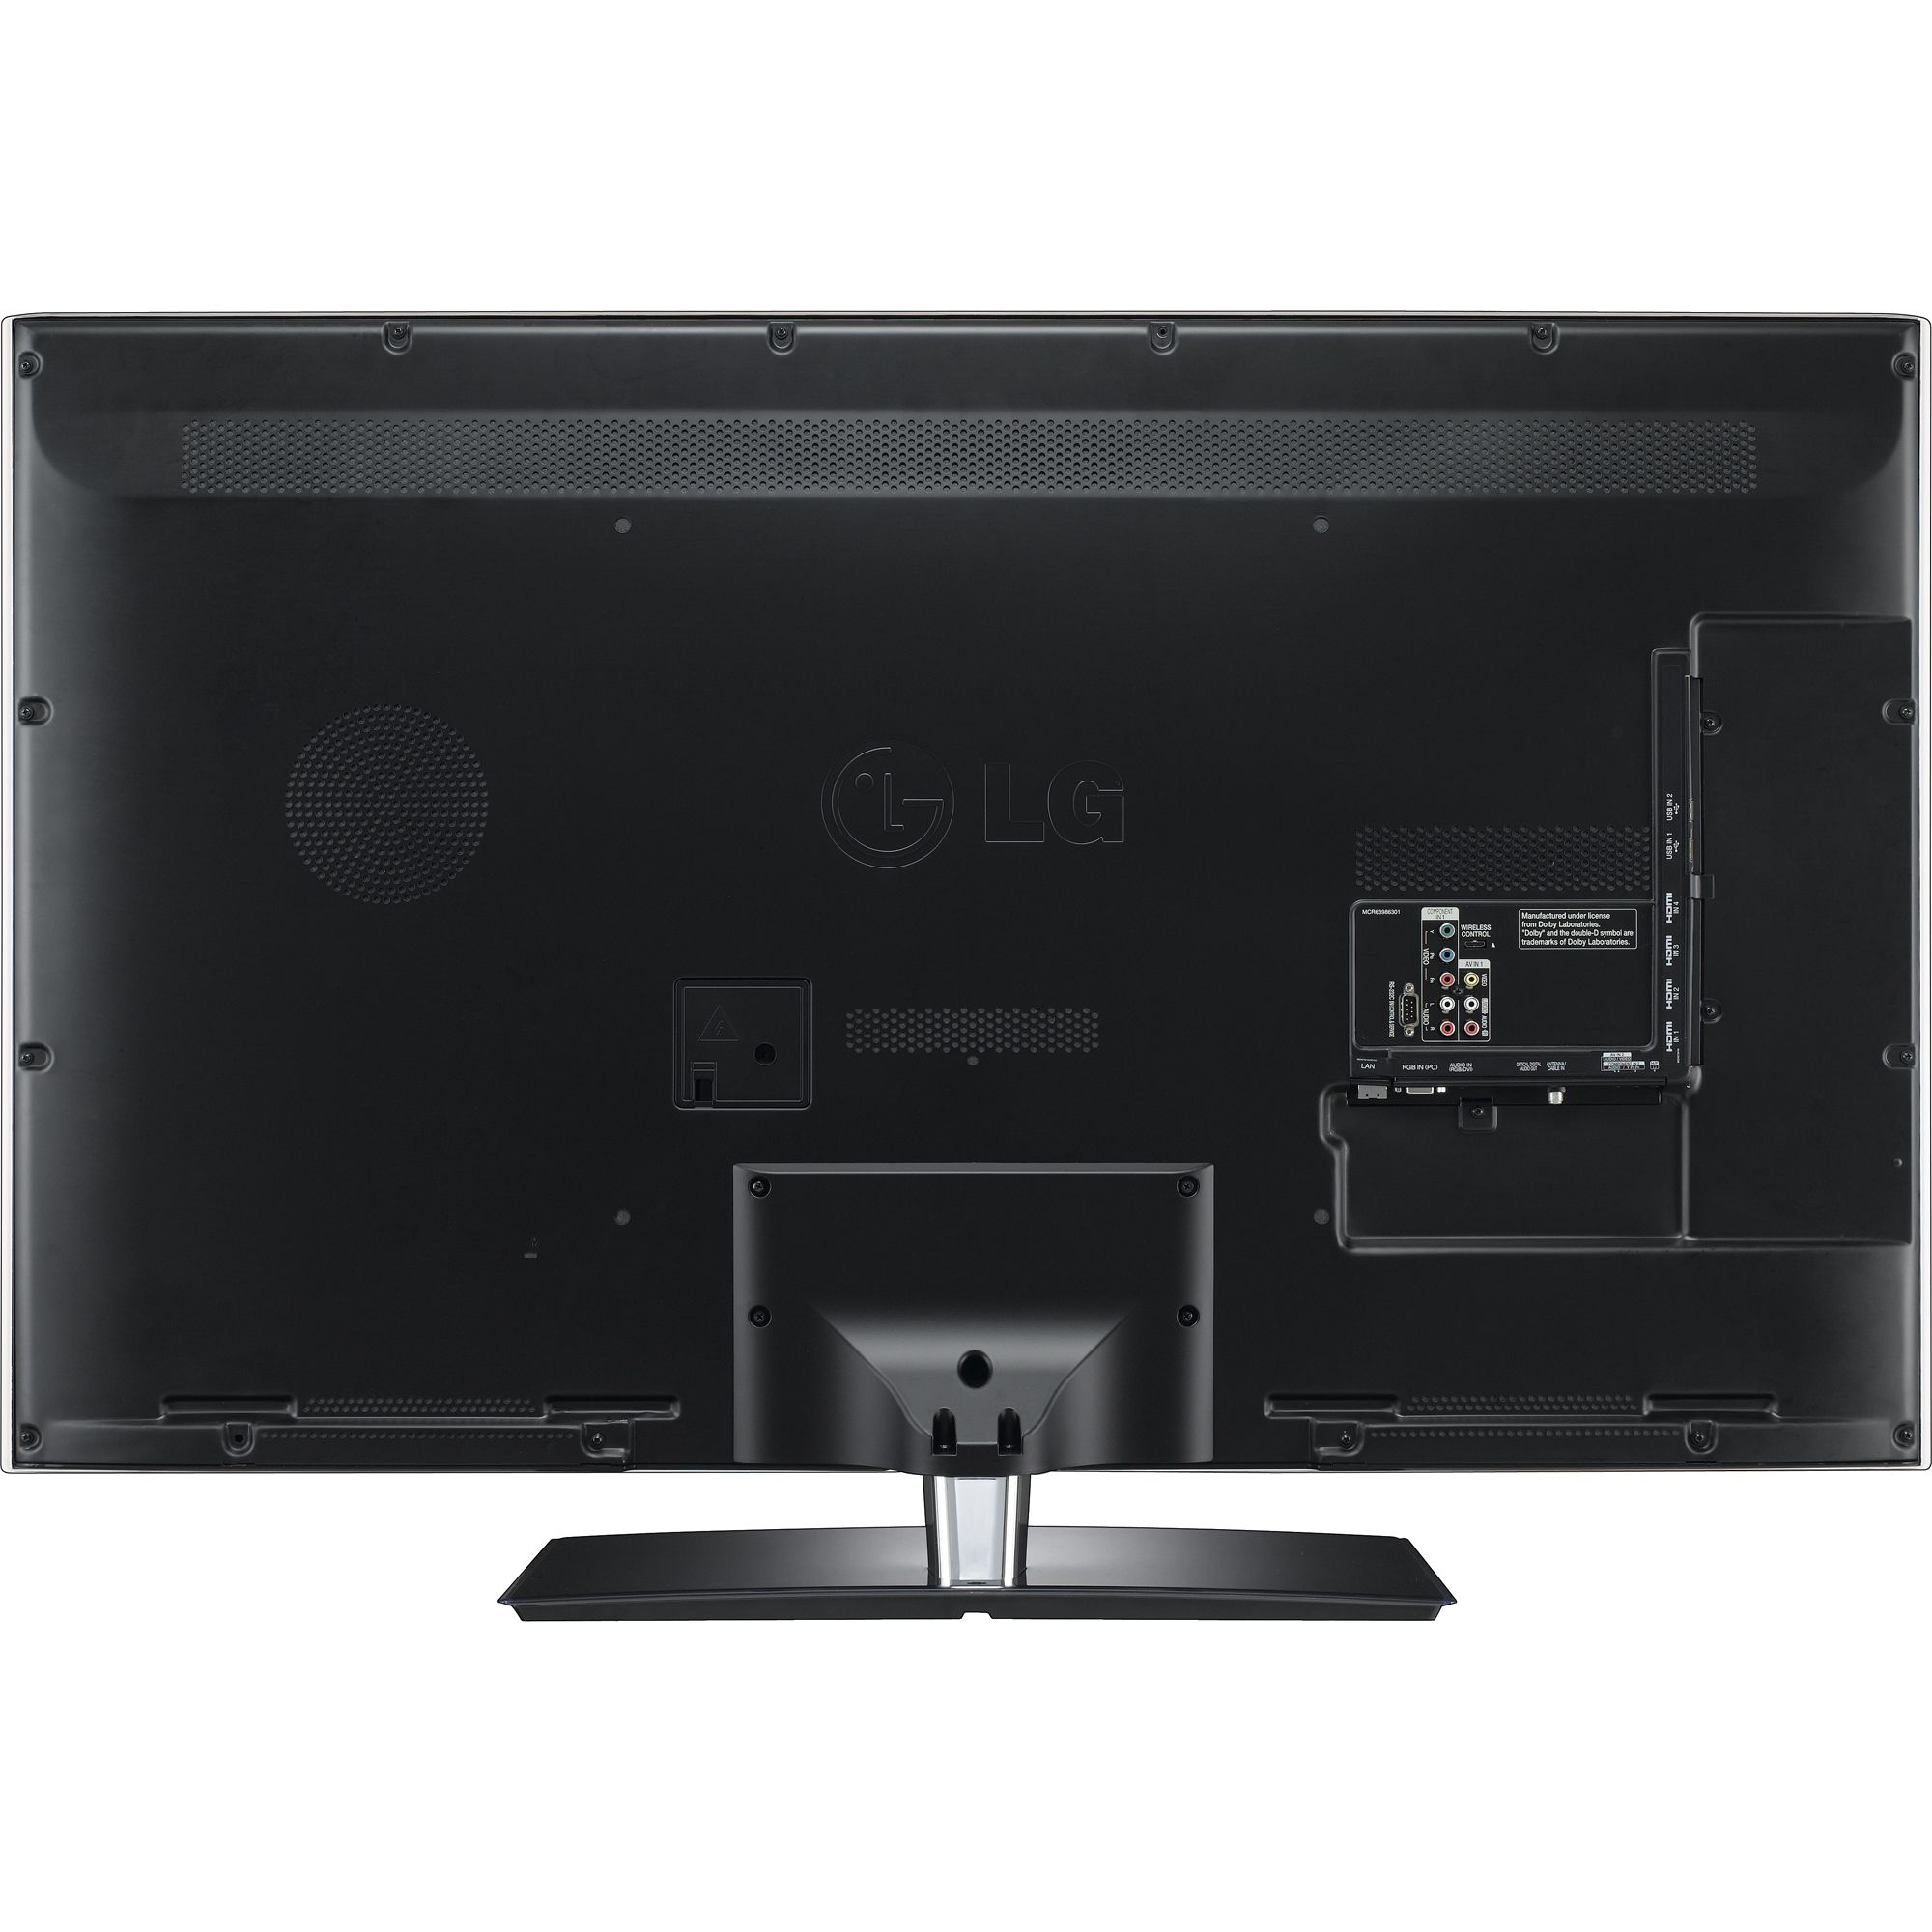 "LG (Refurbished) 47"" Class 1080p LED LCD TV"